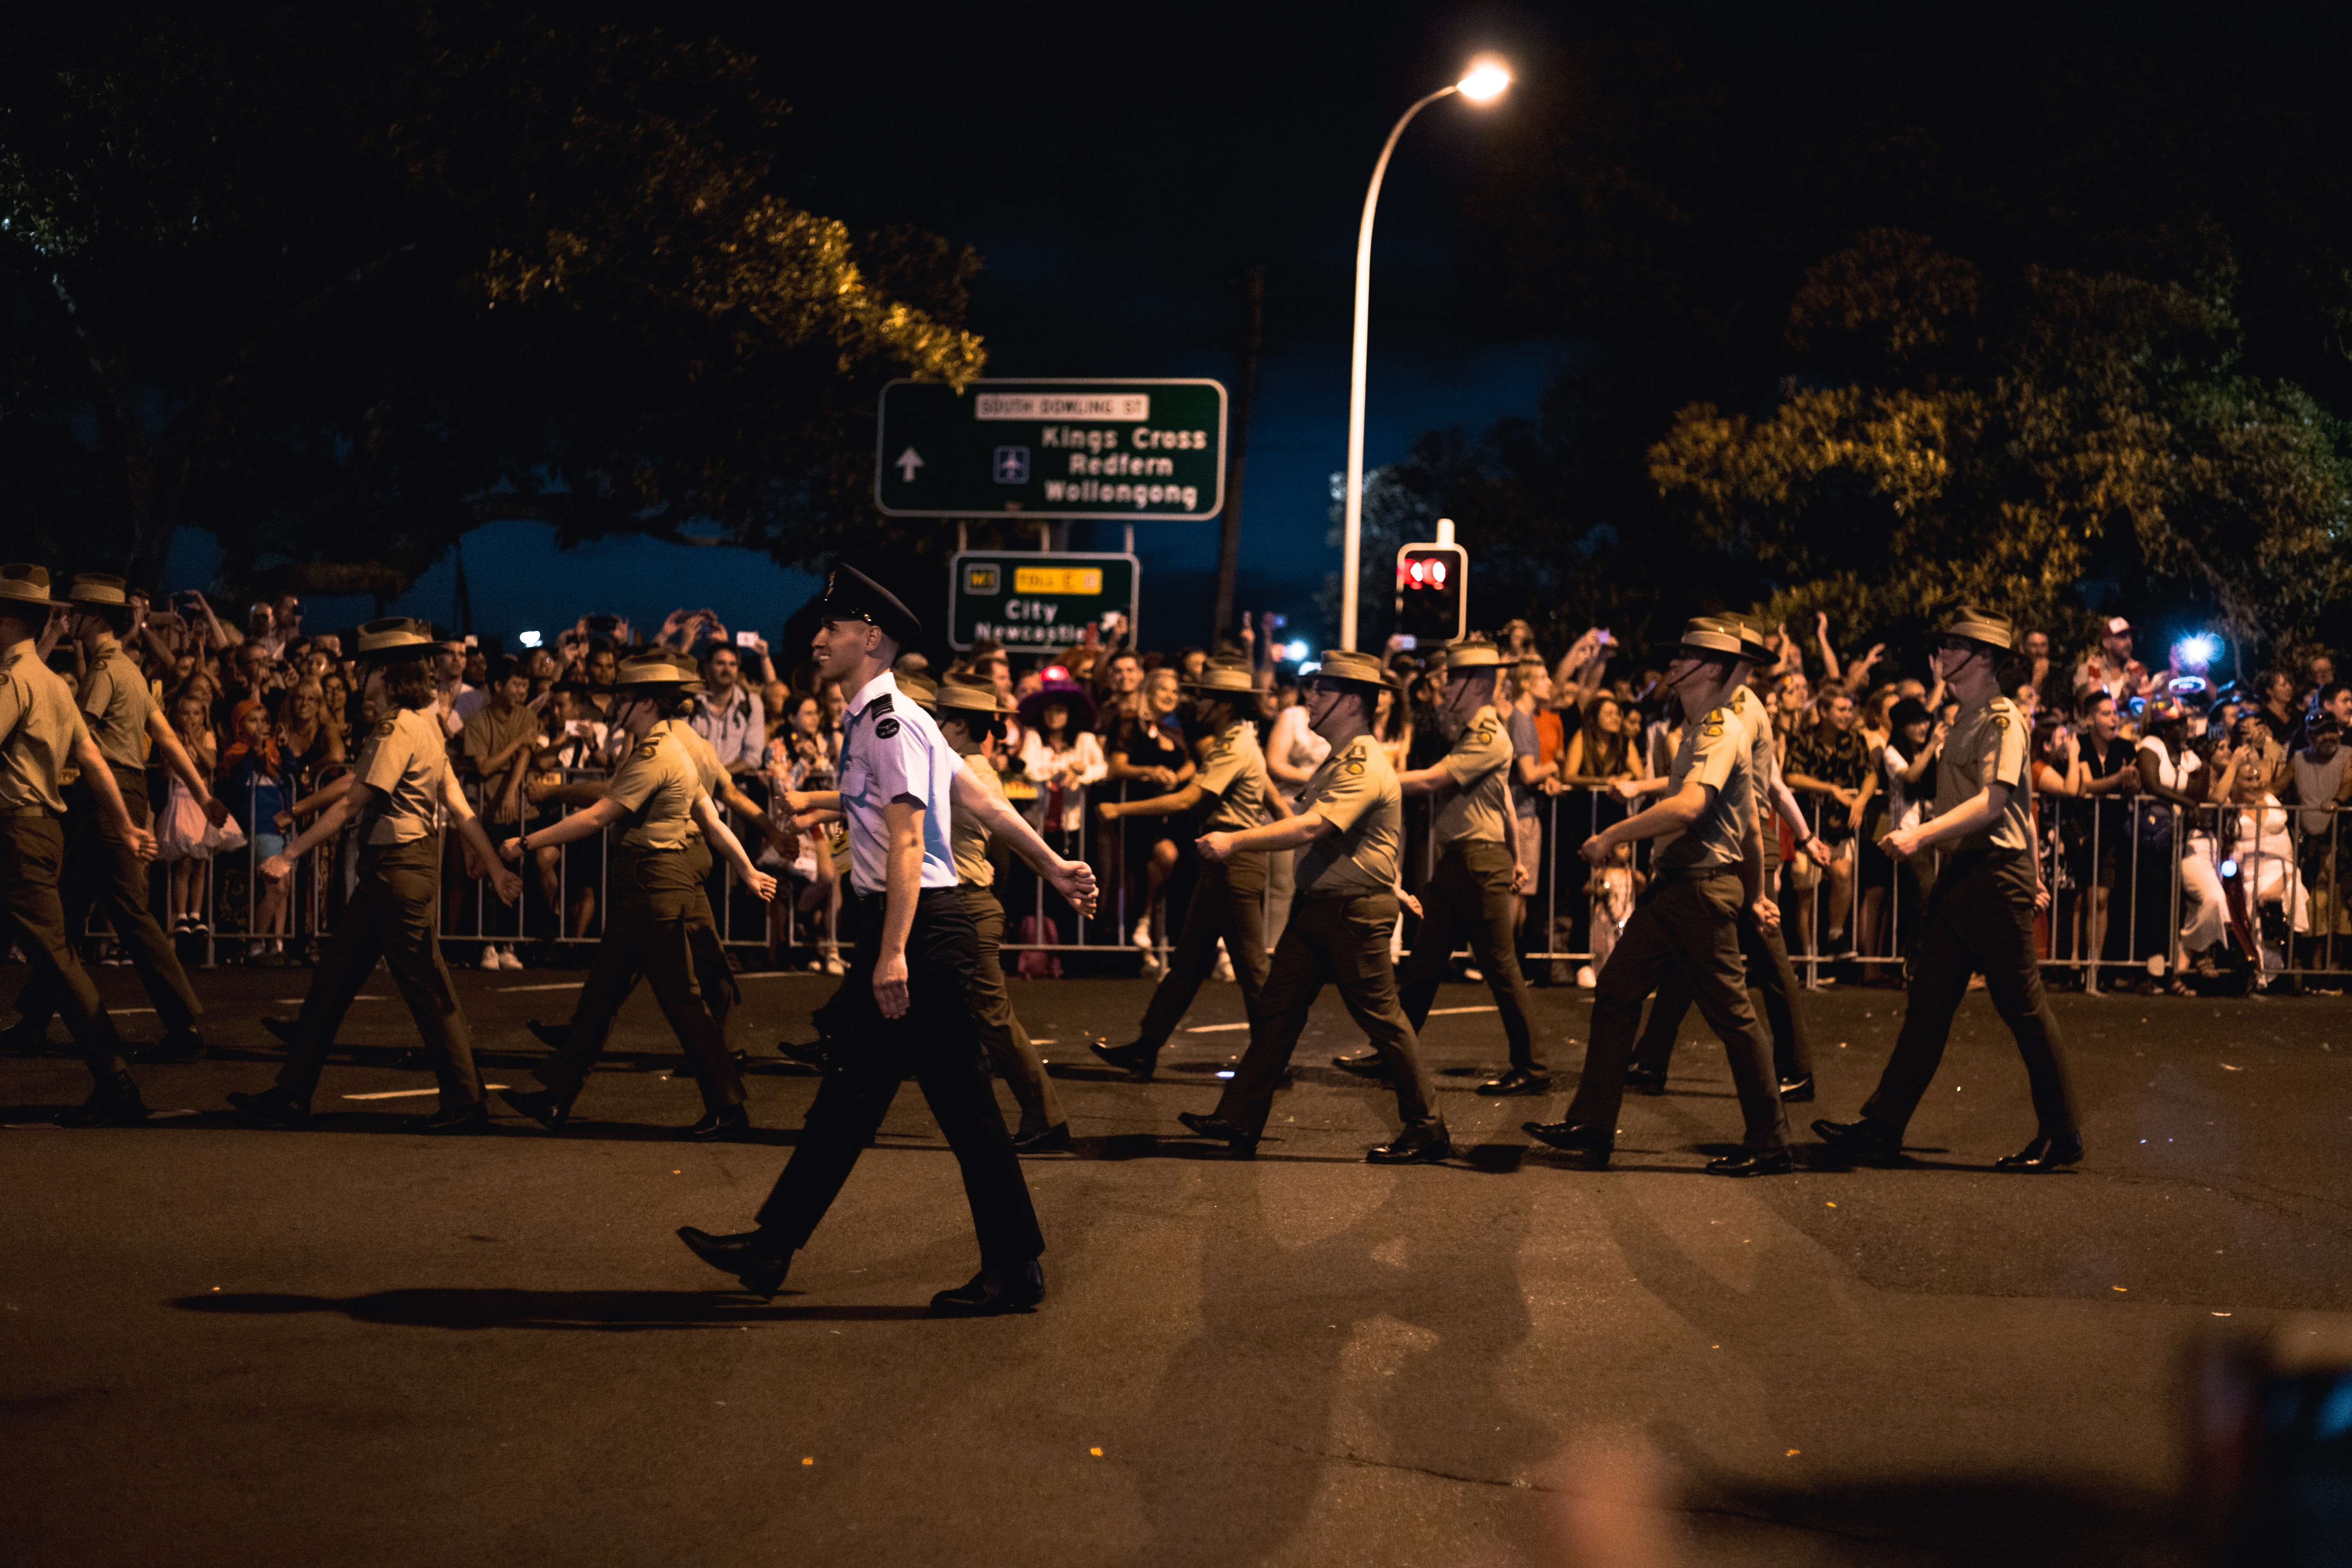 group of police officials marching on road at night with people watching